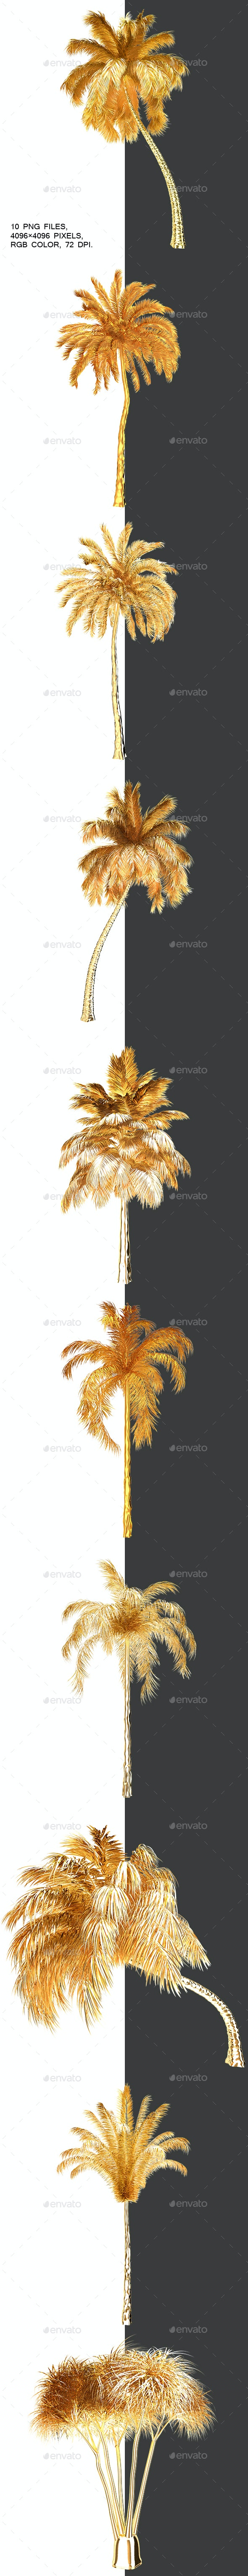 Packing Golden Palm Trees With Alpha Channel - Objects 3D Renders